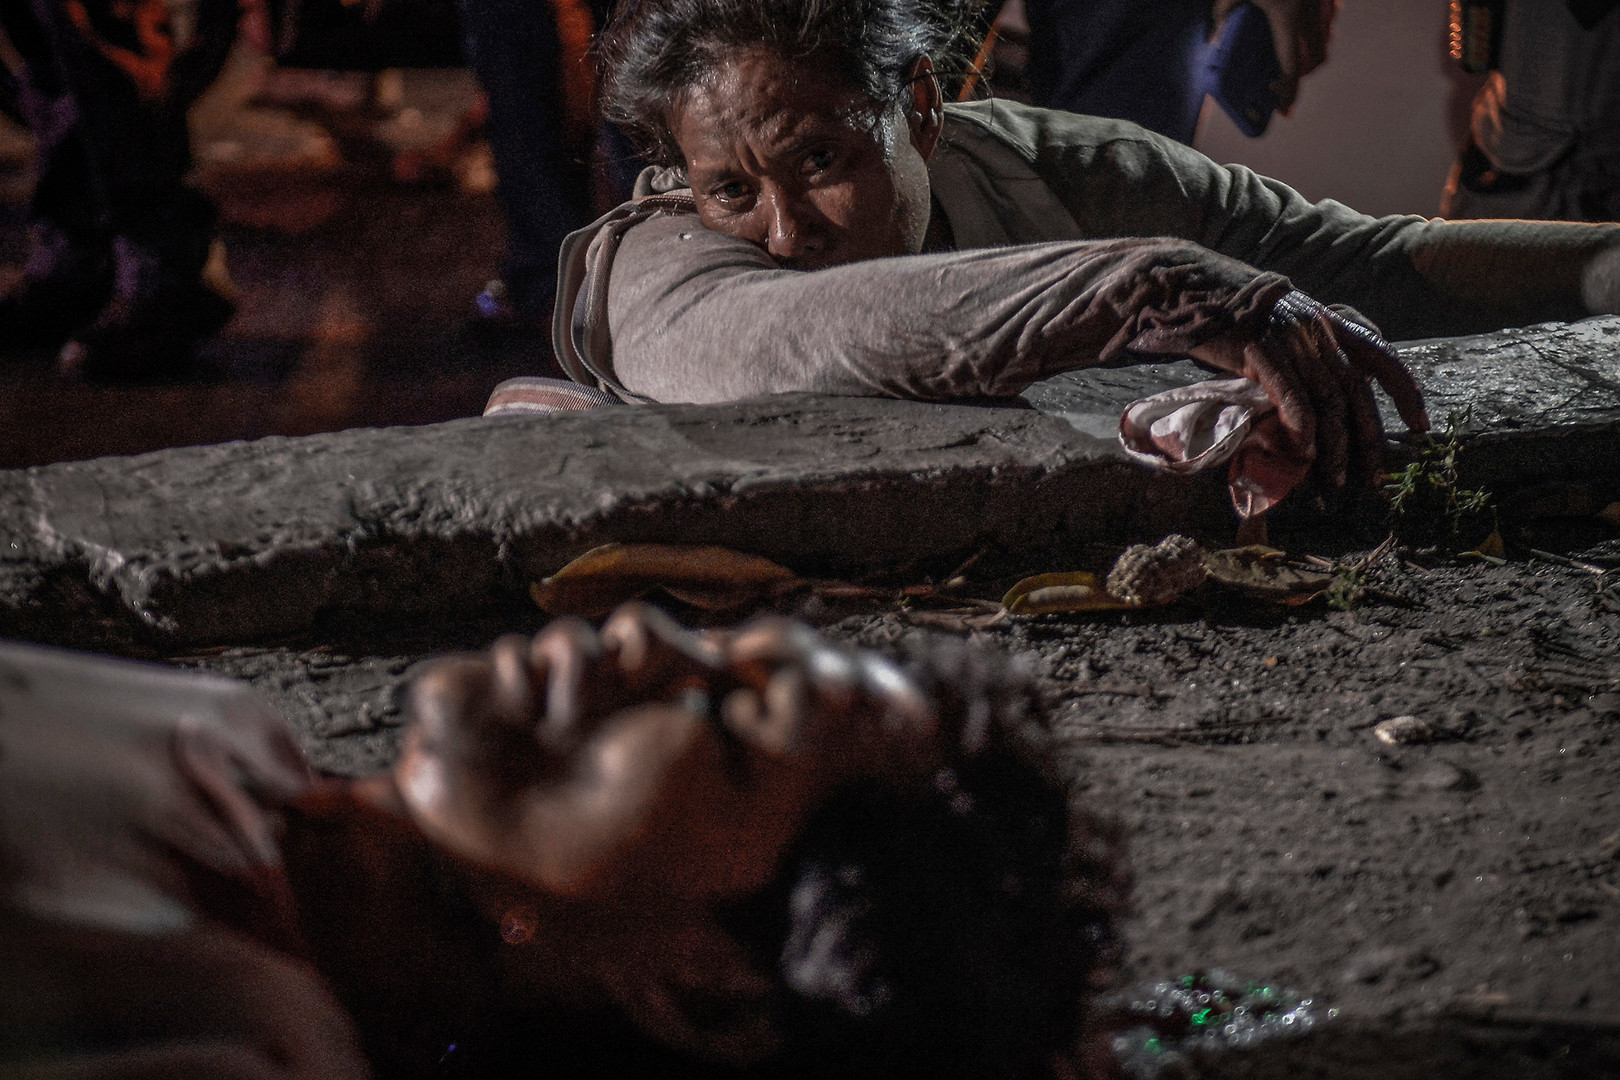 Sentimina Bananga weeps next to the body of her partner Jimmy Said, who according to her was shot dead by an unidentified gunman in a motorcycle while they were begging in the street, in Manila, Philippines, January 22, 2017.